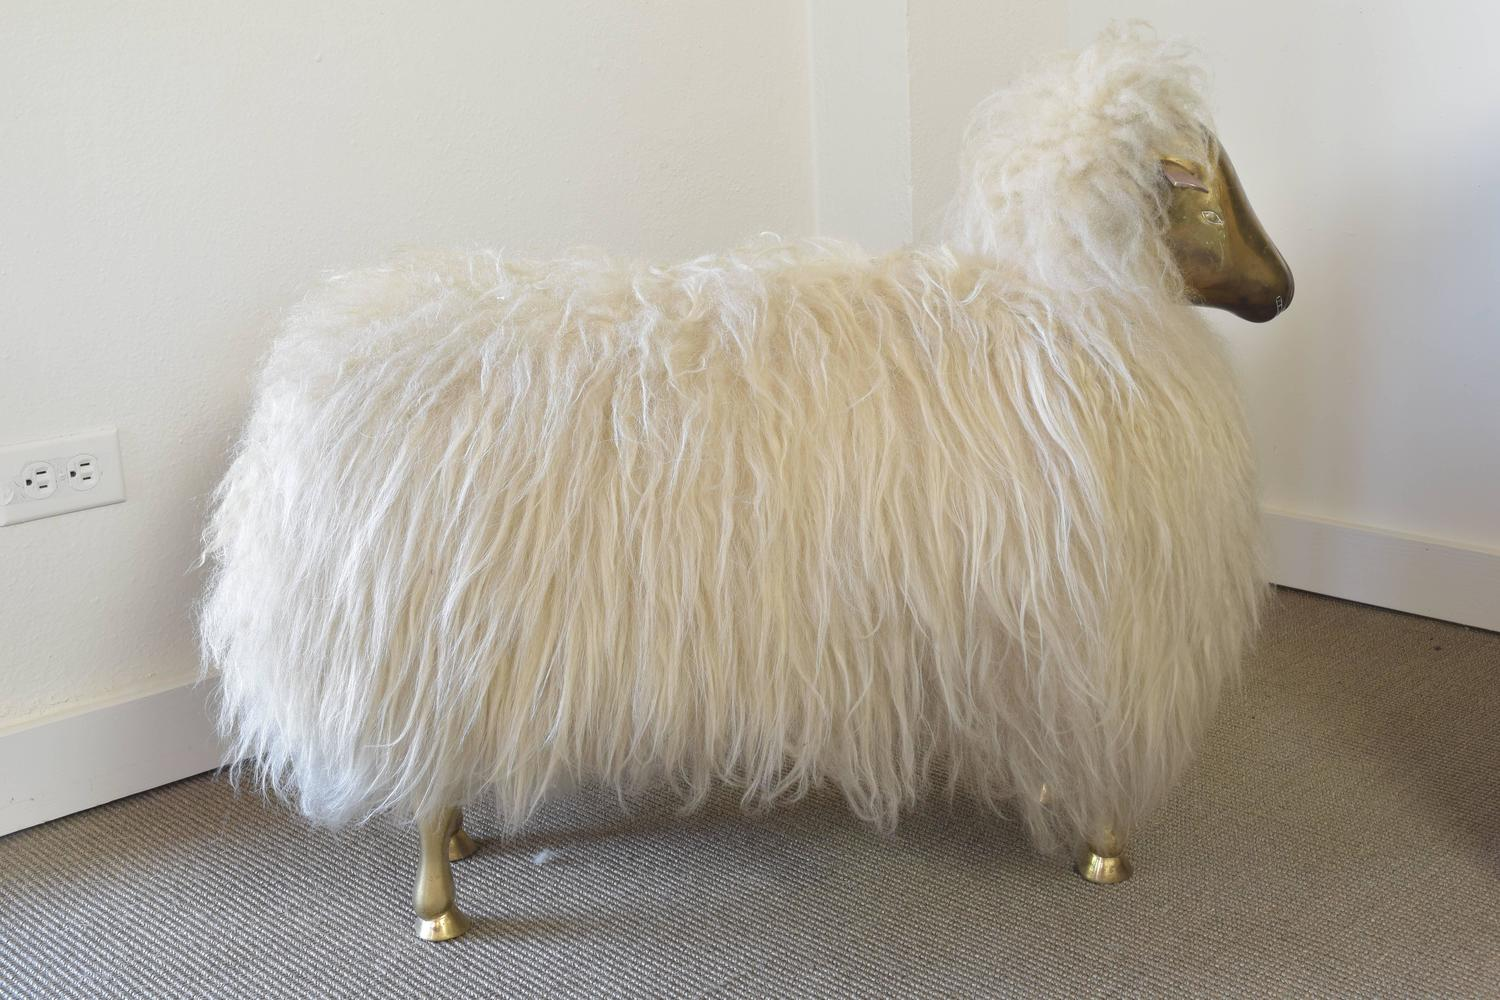 Brass Lamb Sculptural Ottoman Manner Of Claude Lalanne For